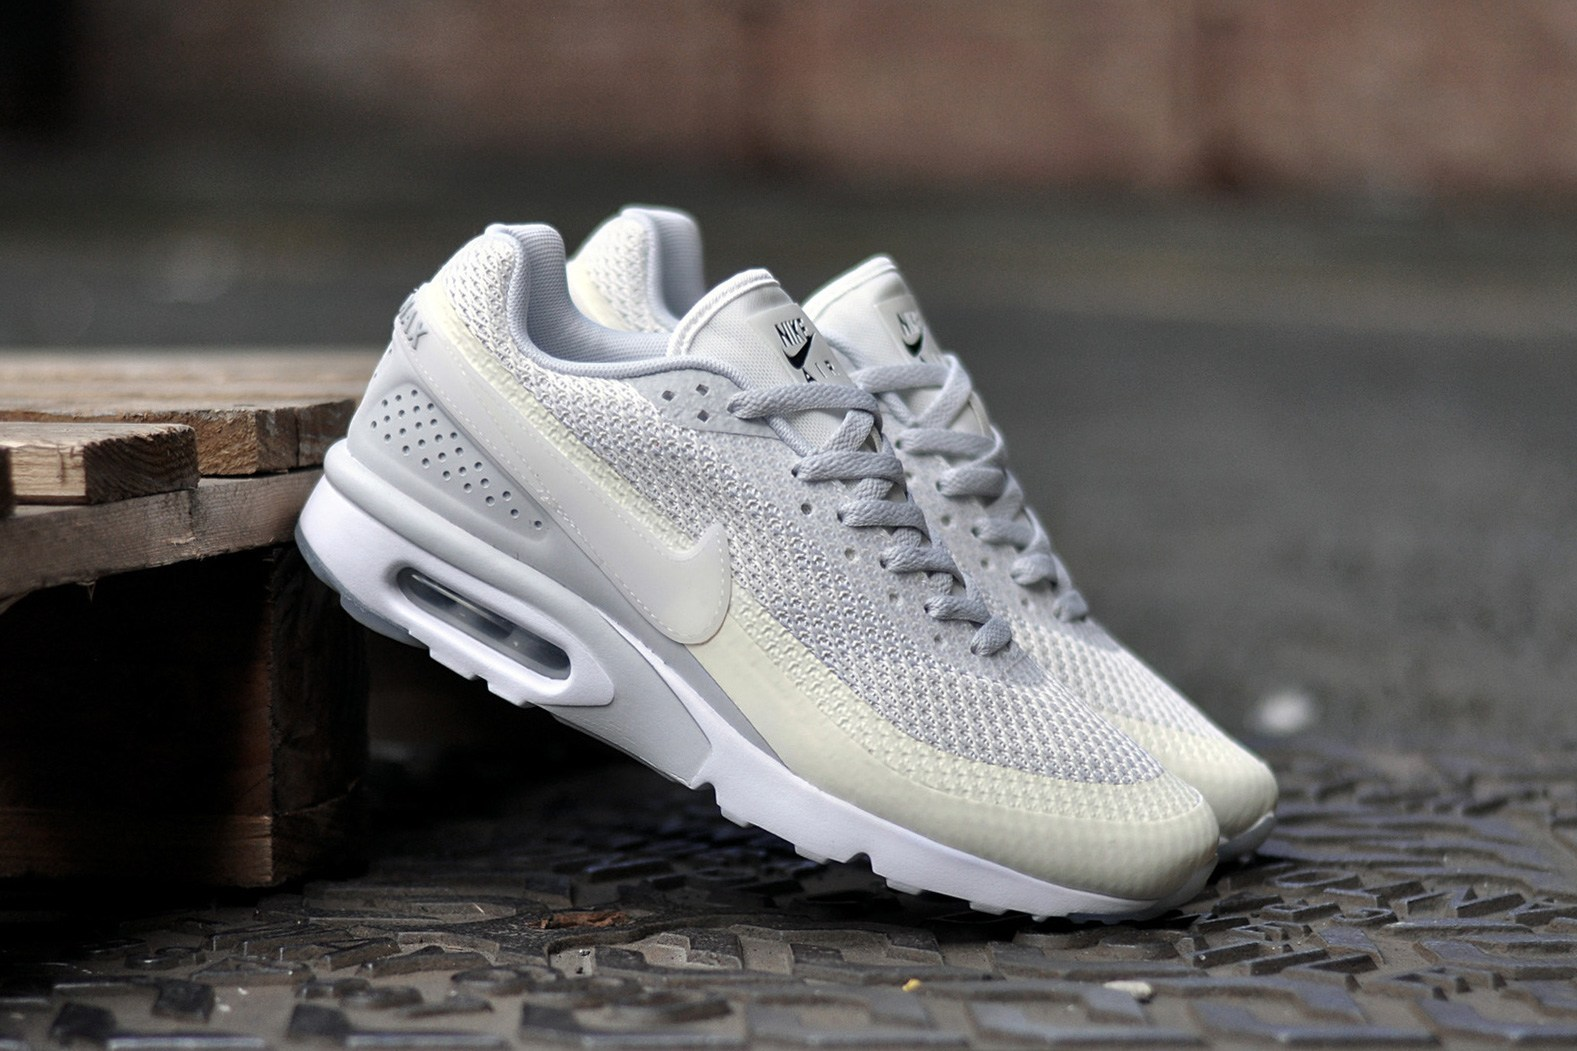 Nike Air Max BW Ultra Knit Jacquard Premium for Men Sail Sail – Pure Platinum 819880 100 Nike, Nike Air Max, Nike Air Max BW, Nike Men